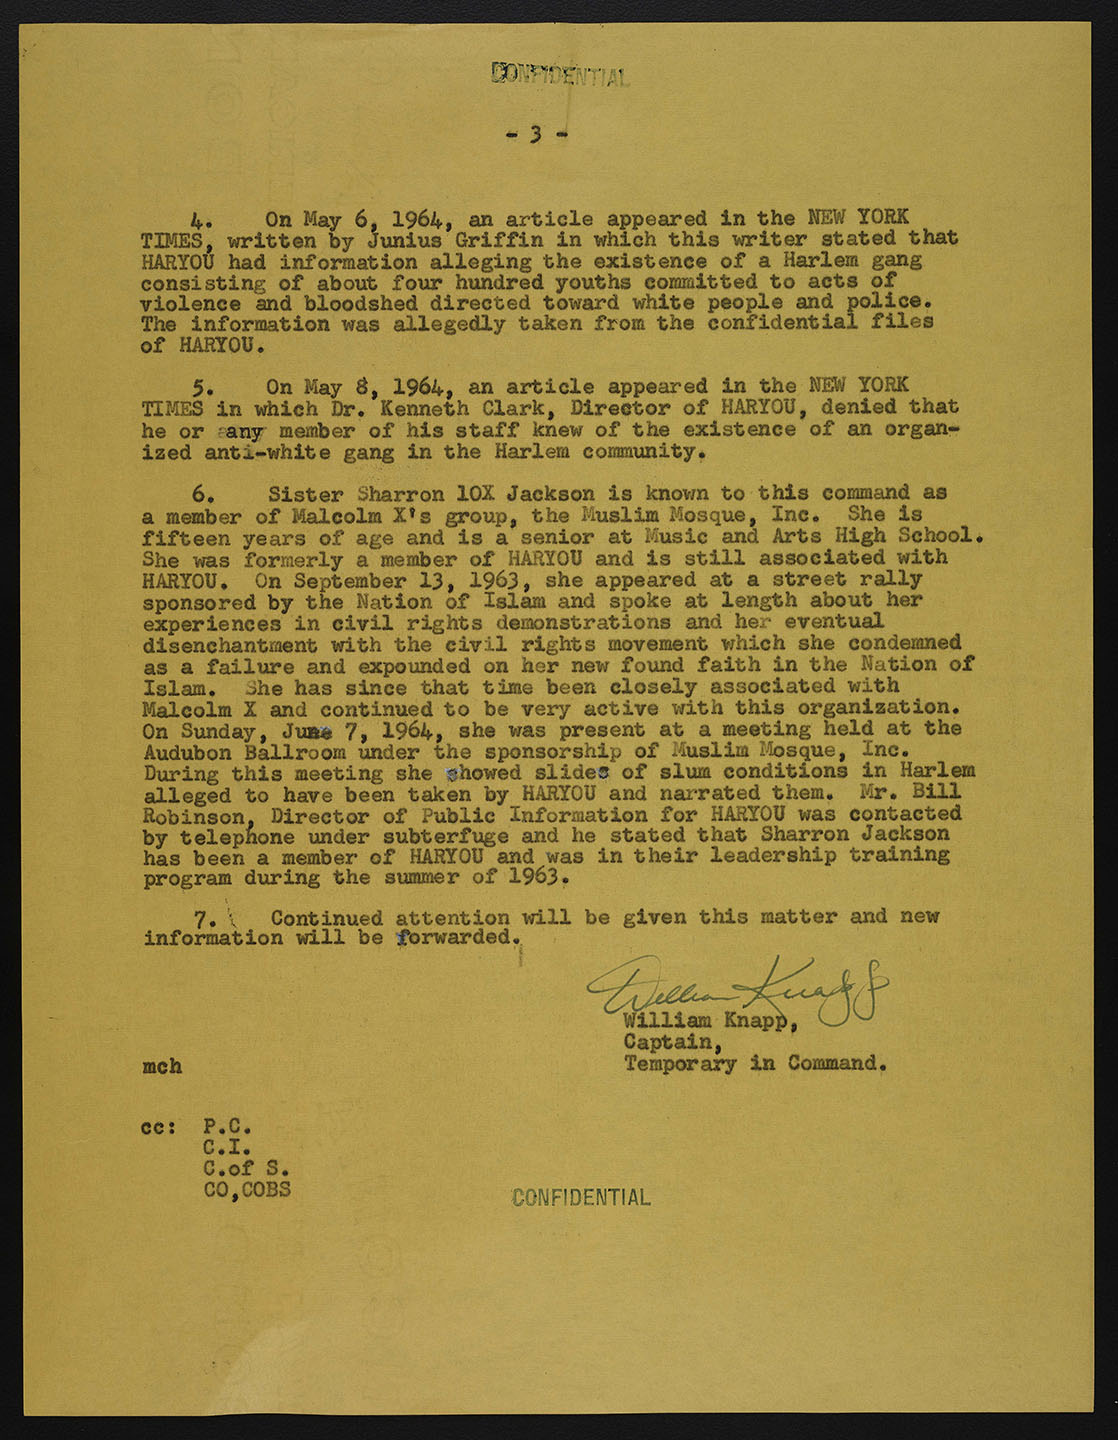 Letter from commanding officer of BOSS to the Chief of Detectives on members of HARYOU. NYPD Intelligence Division Records, NYC Municipal Archives.